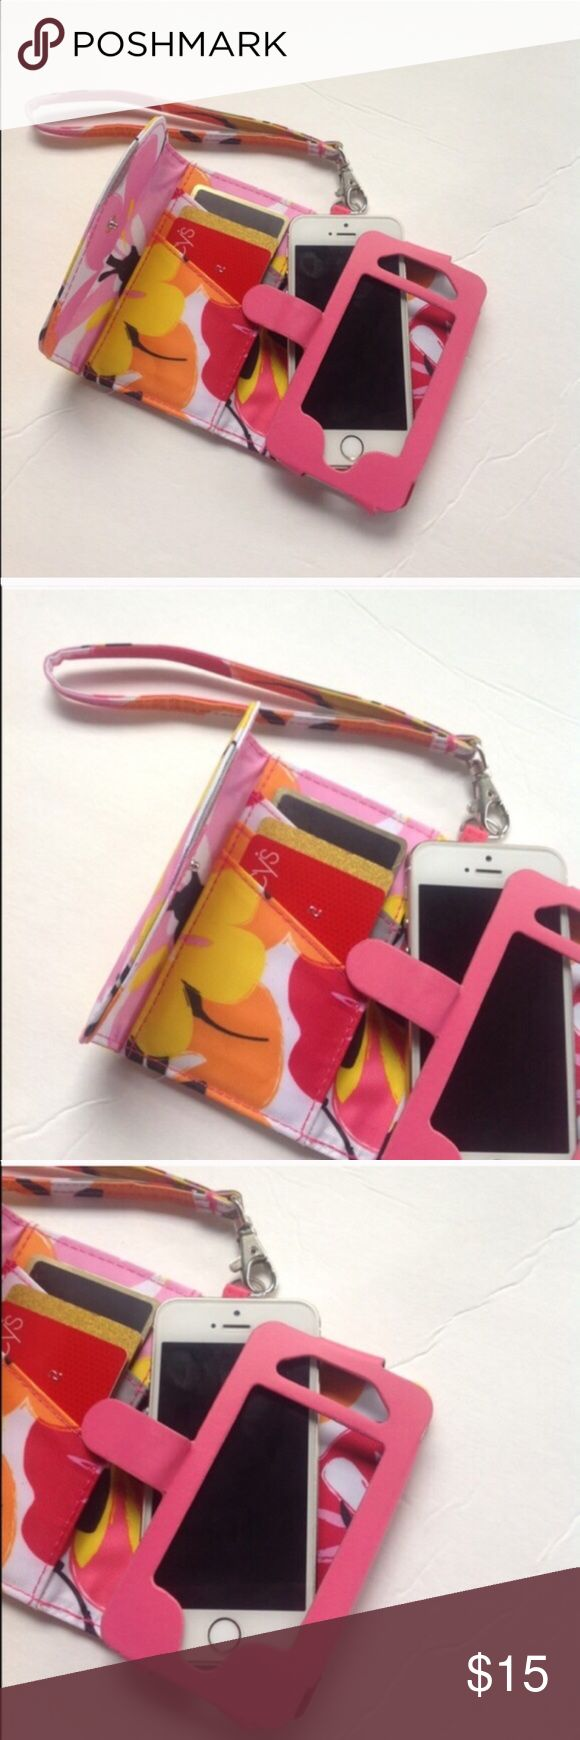 iPhone 4 wallet case Preloved iPhone 4 wallet wristlet Accessories Phone Cases